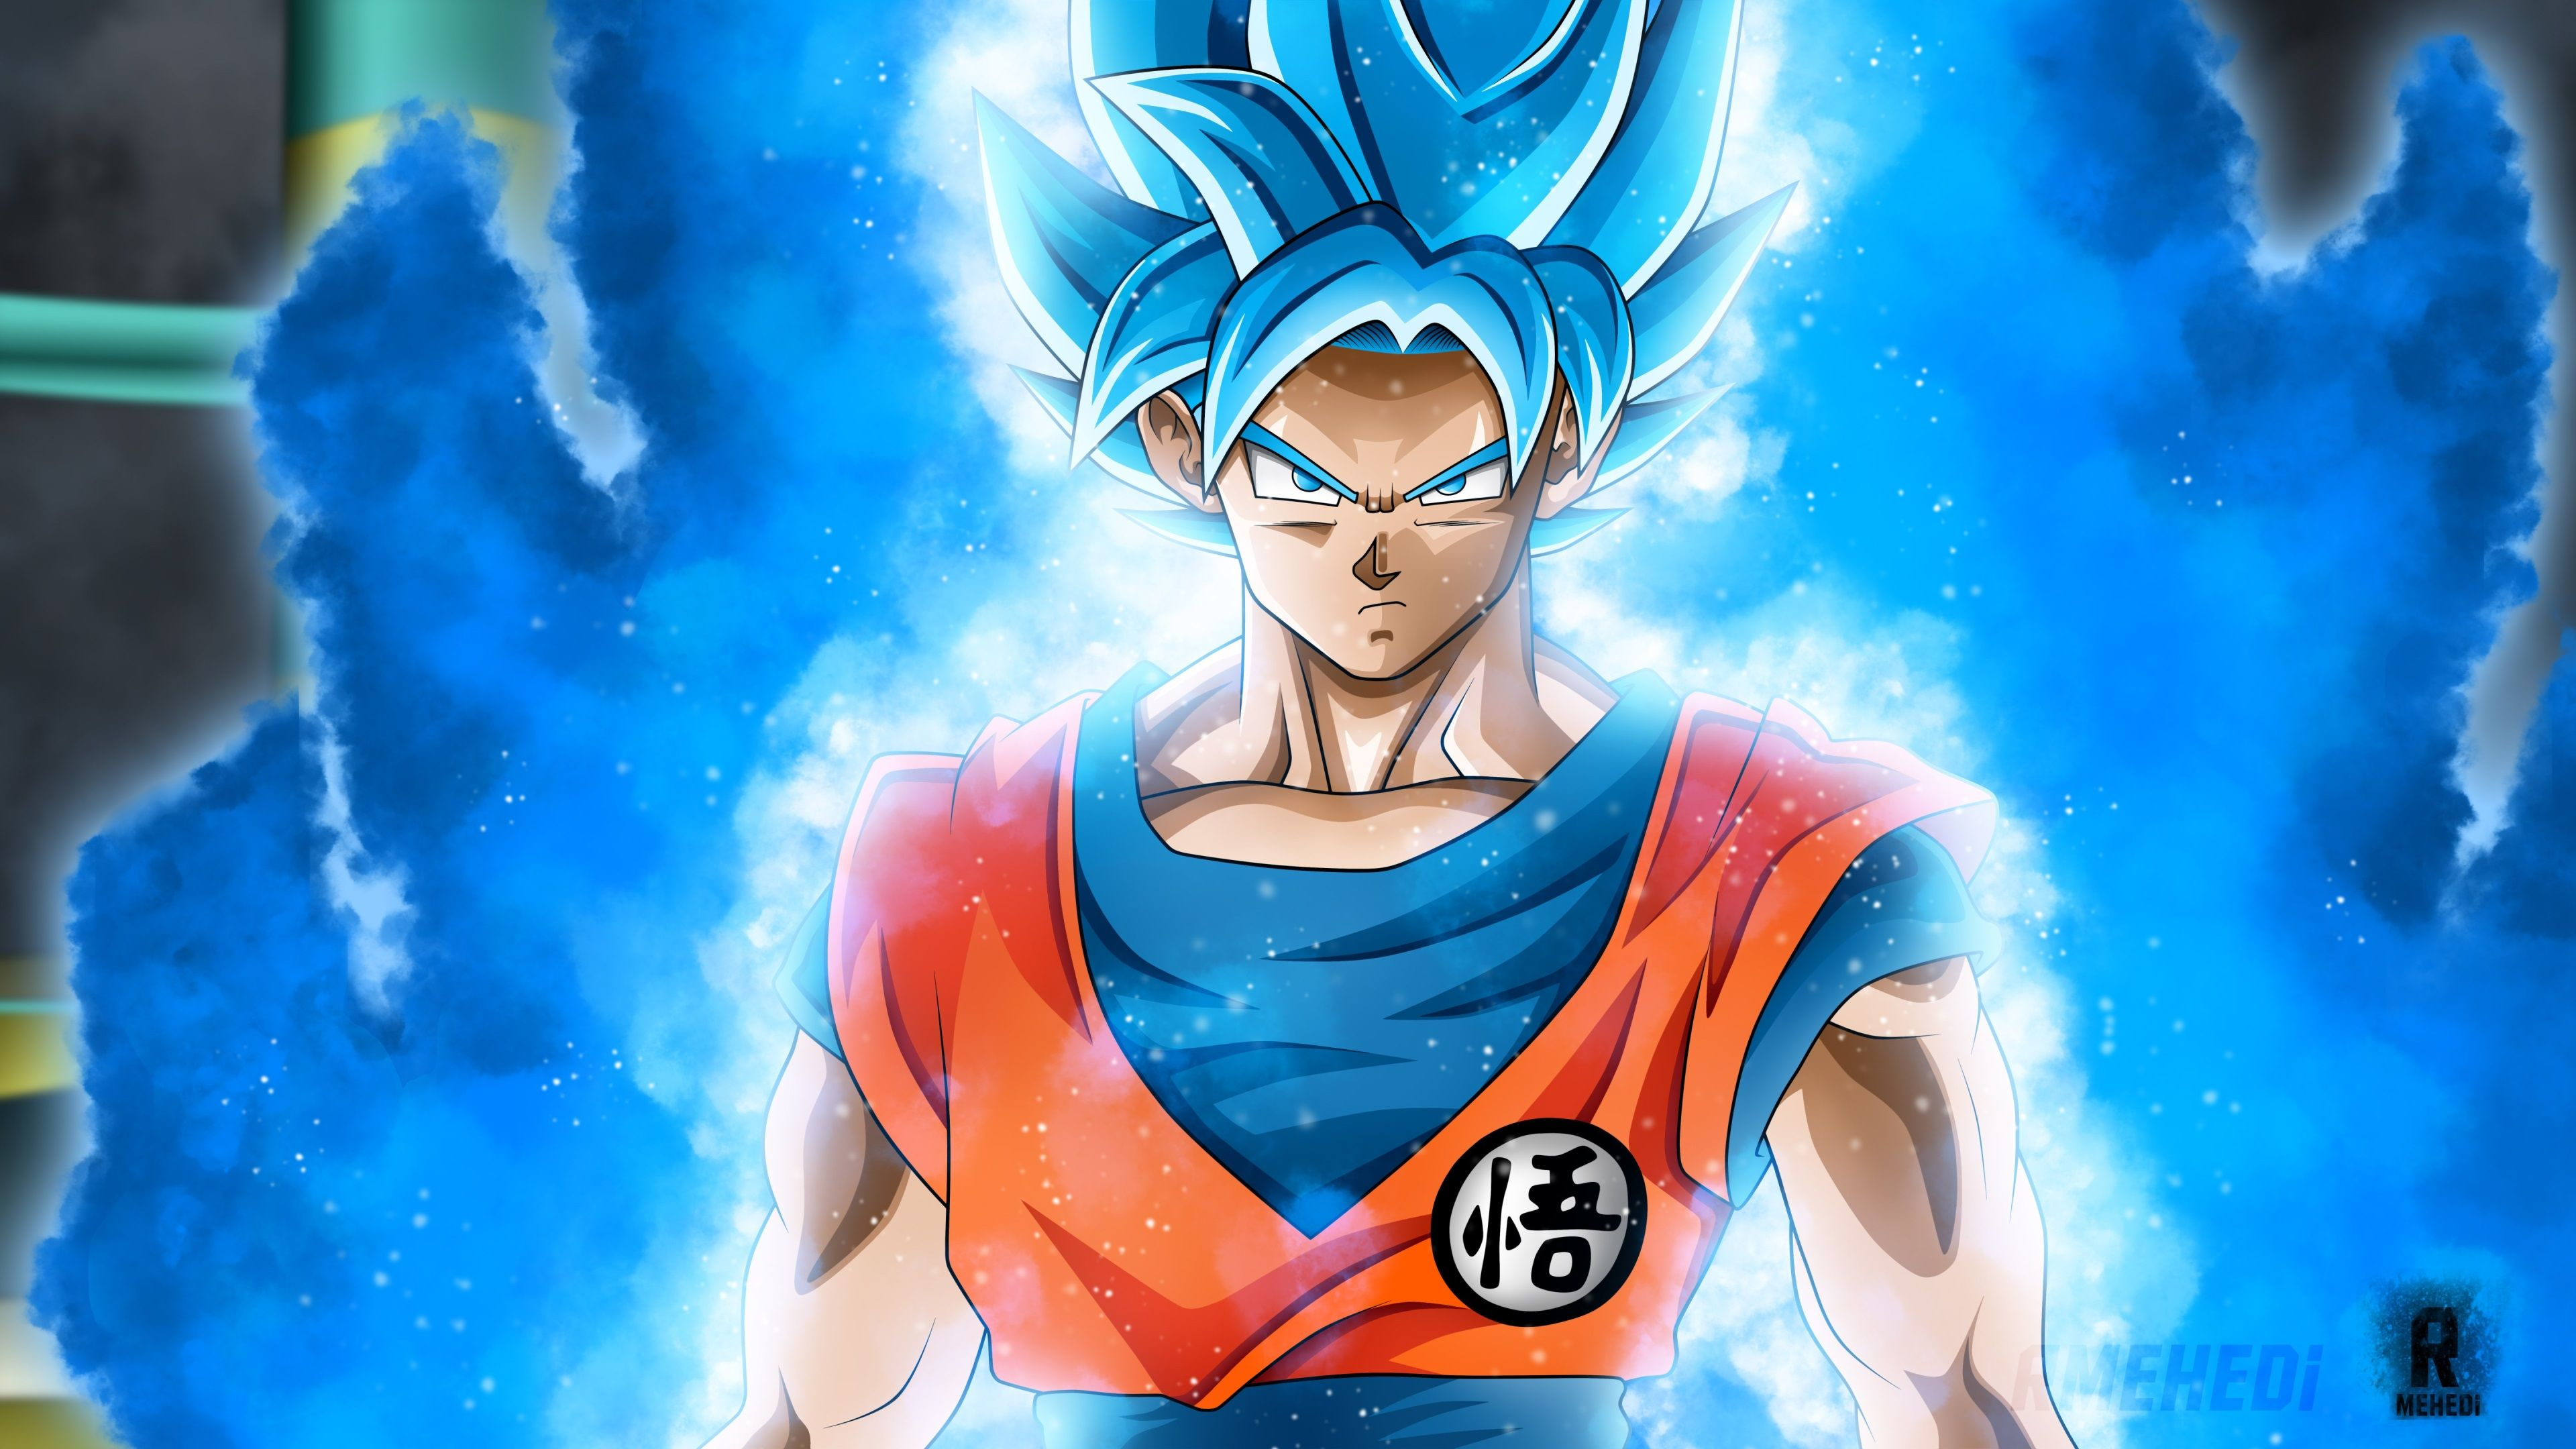 3840x2160 Goku 4k Wallpaper For Desktop Background Desktop